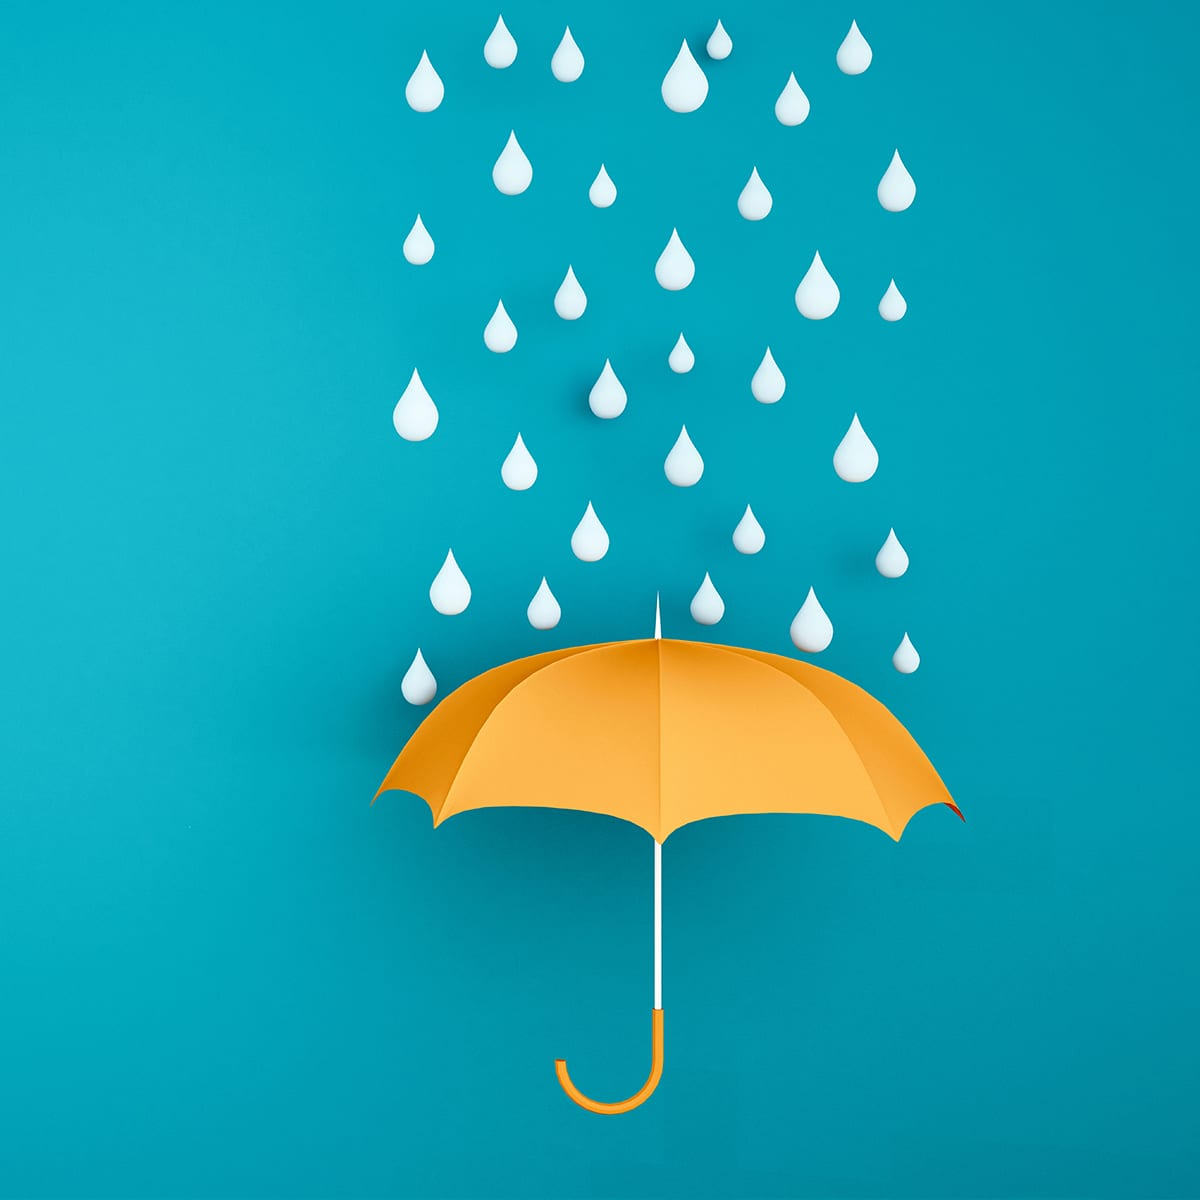 Orange umbrella with water drop on a blue backdrop - Rainy season for artwork - Orange umbrella with the weather in the rainy season - 3D Illustration